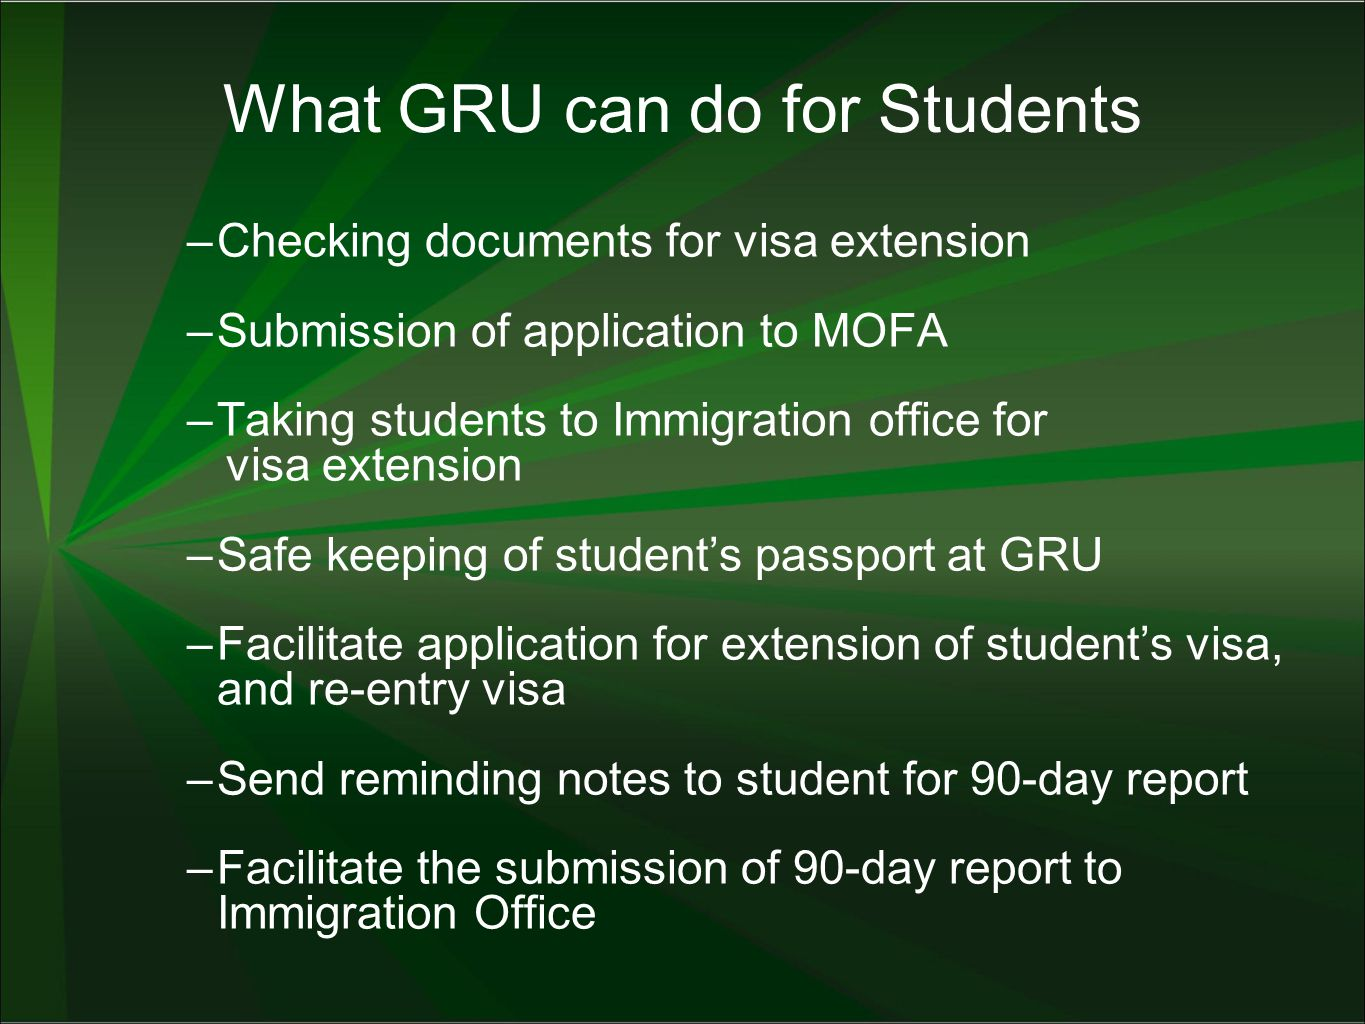 What GRU can do for Students